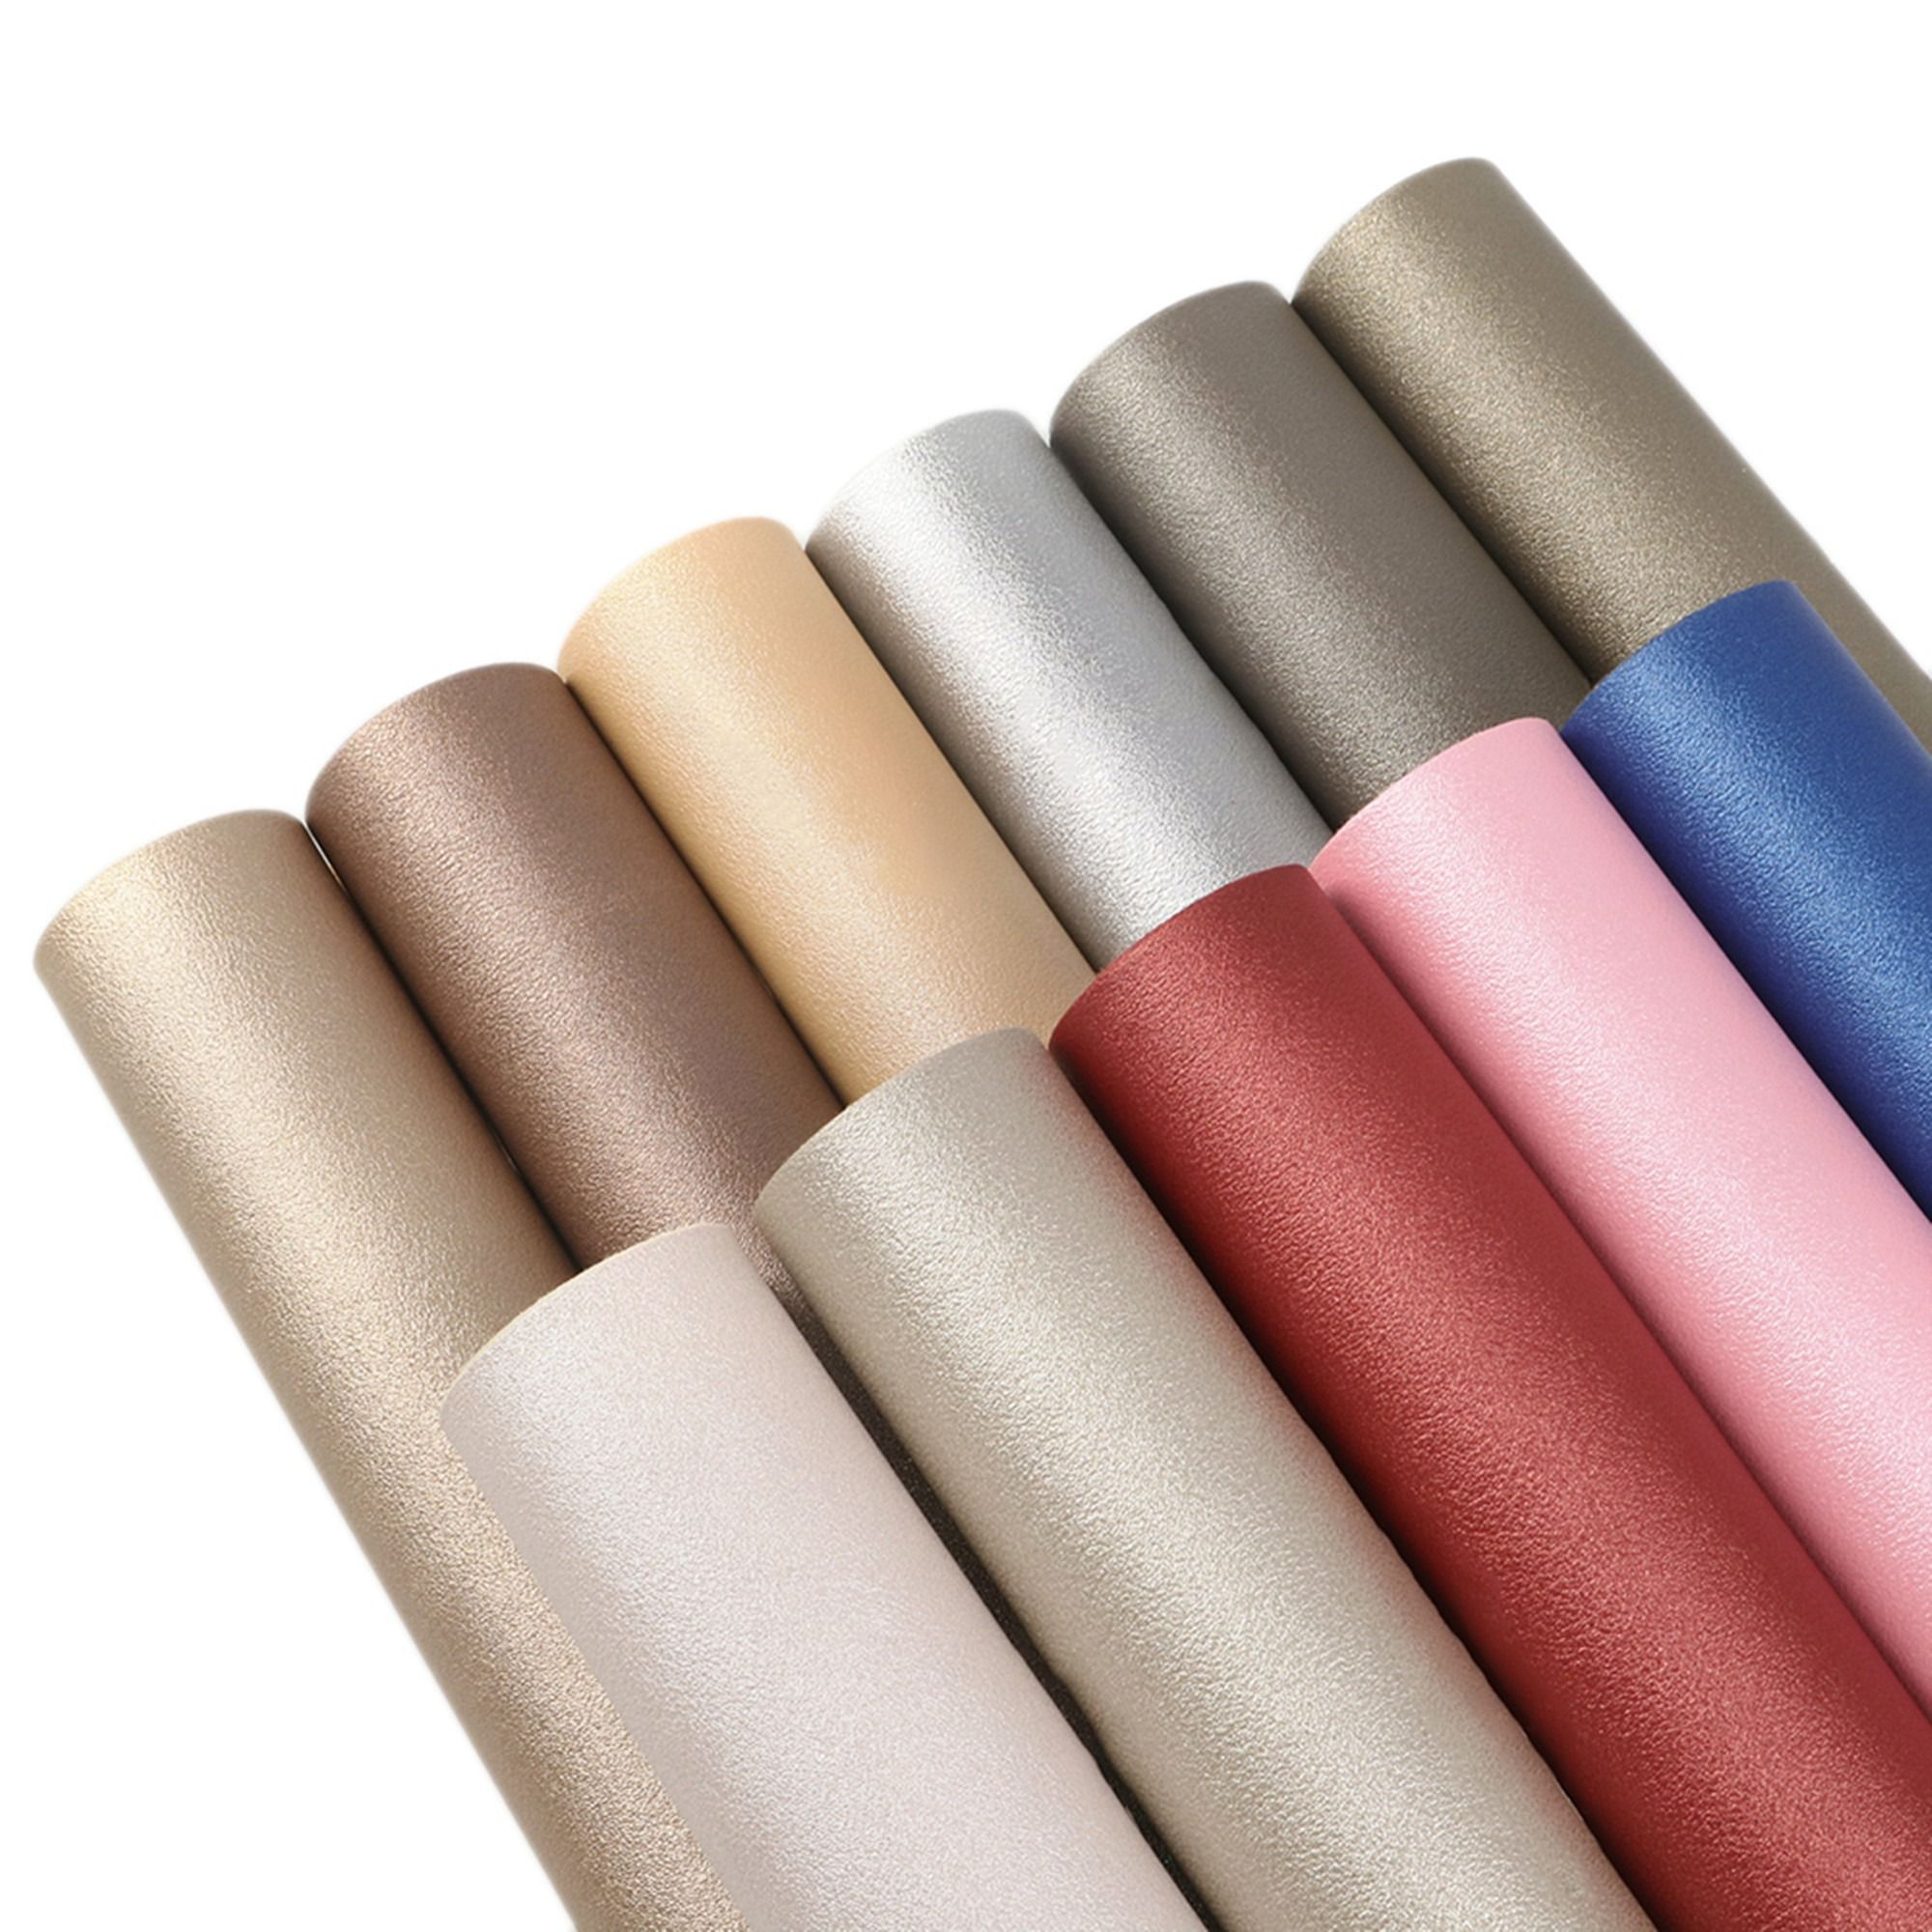 Faux Leather Fabric By The Yard Vegan Faux Leather Leatherette Fabric For Bows Bags Metallic Sewing Synthetic Leather 19 By 55 Inch